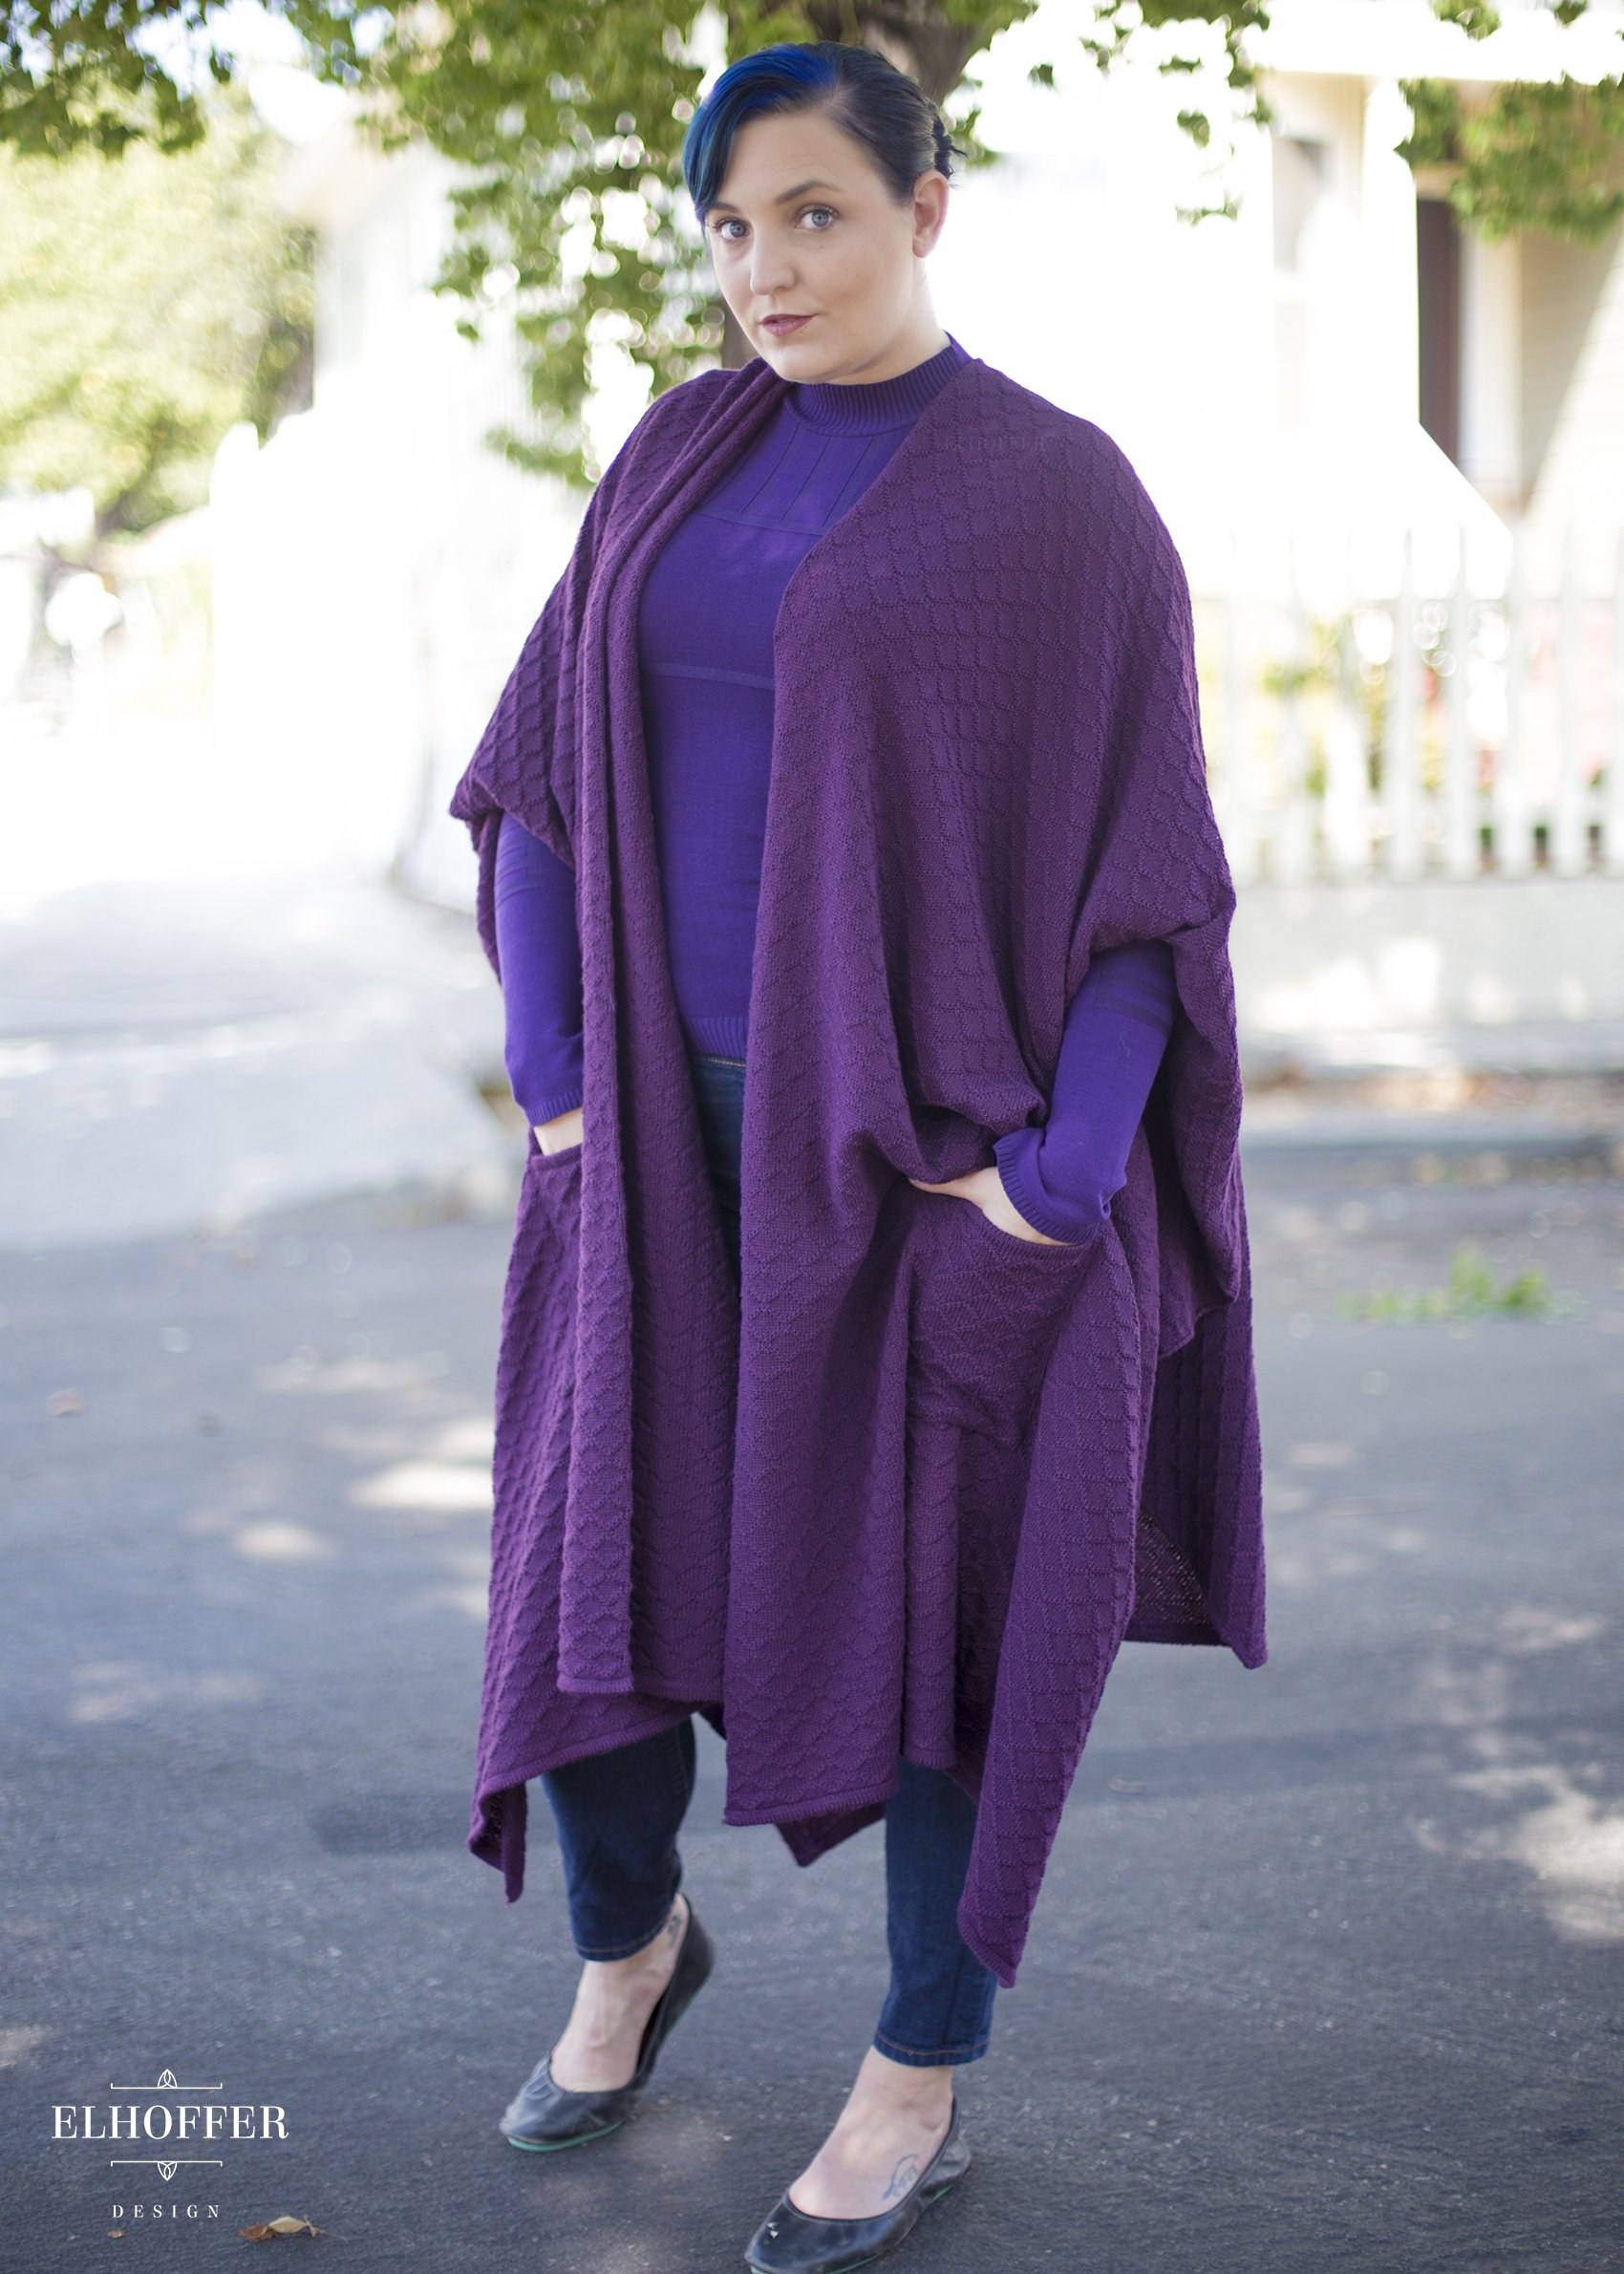 Elhoffer Design - Star Wars Padme' Amidala Inspired Galactic Desert Cape and Pullover